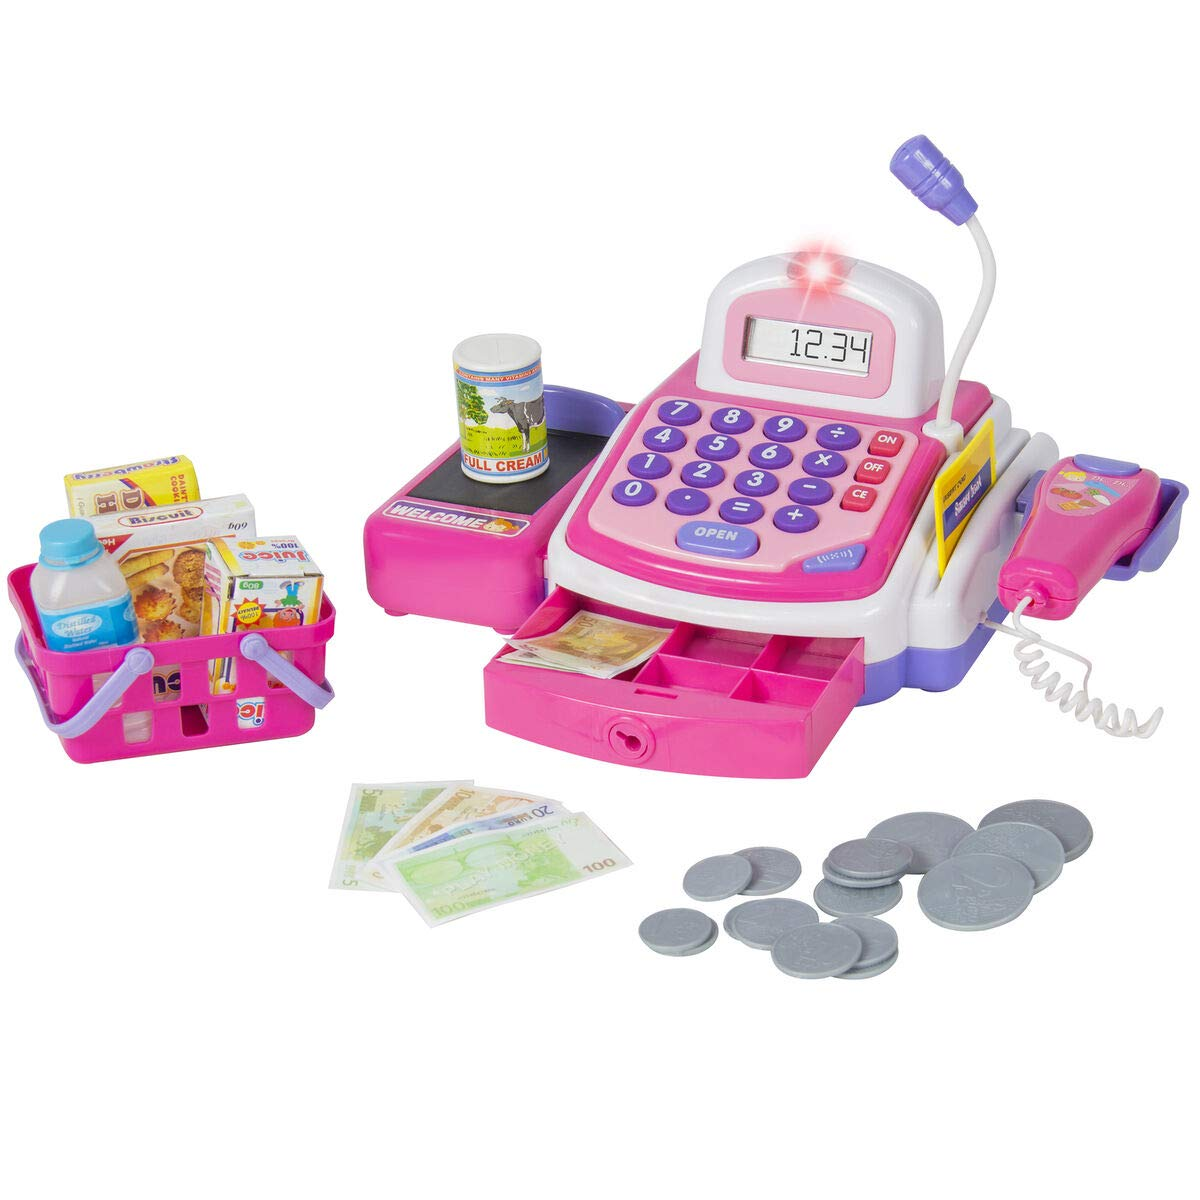 Pretend Play Electronic Cash Register Toy Realistic Actions & Sounds Pink, Best Children's Toys 2019